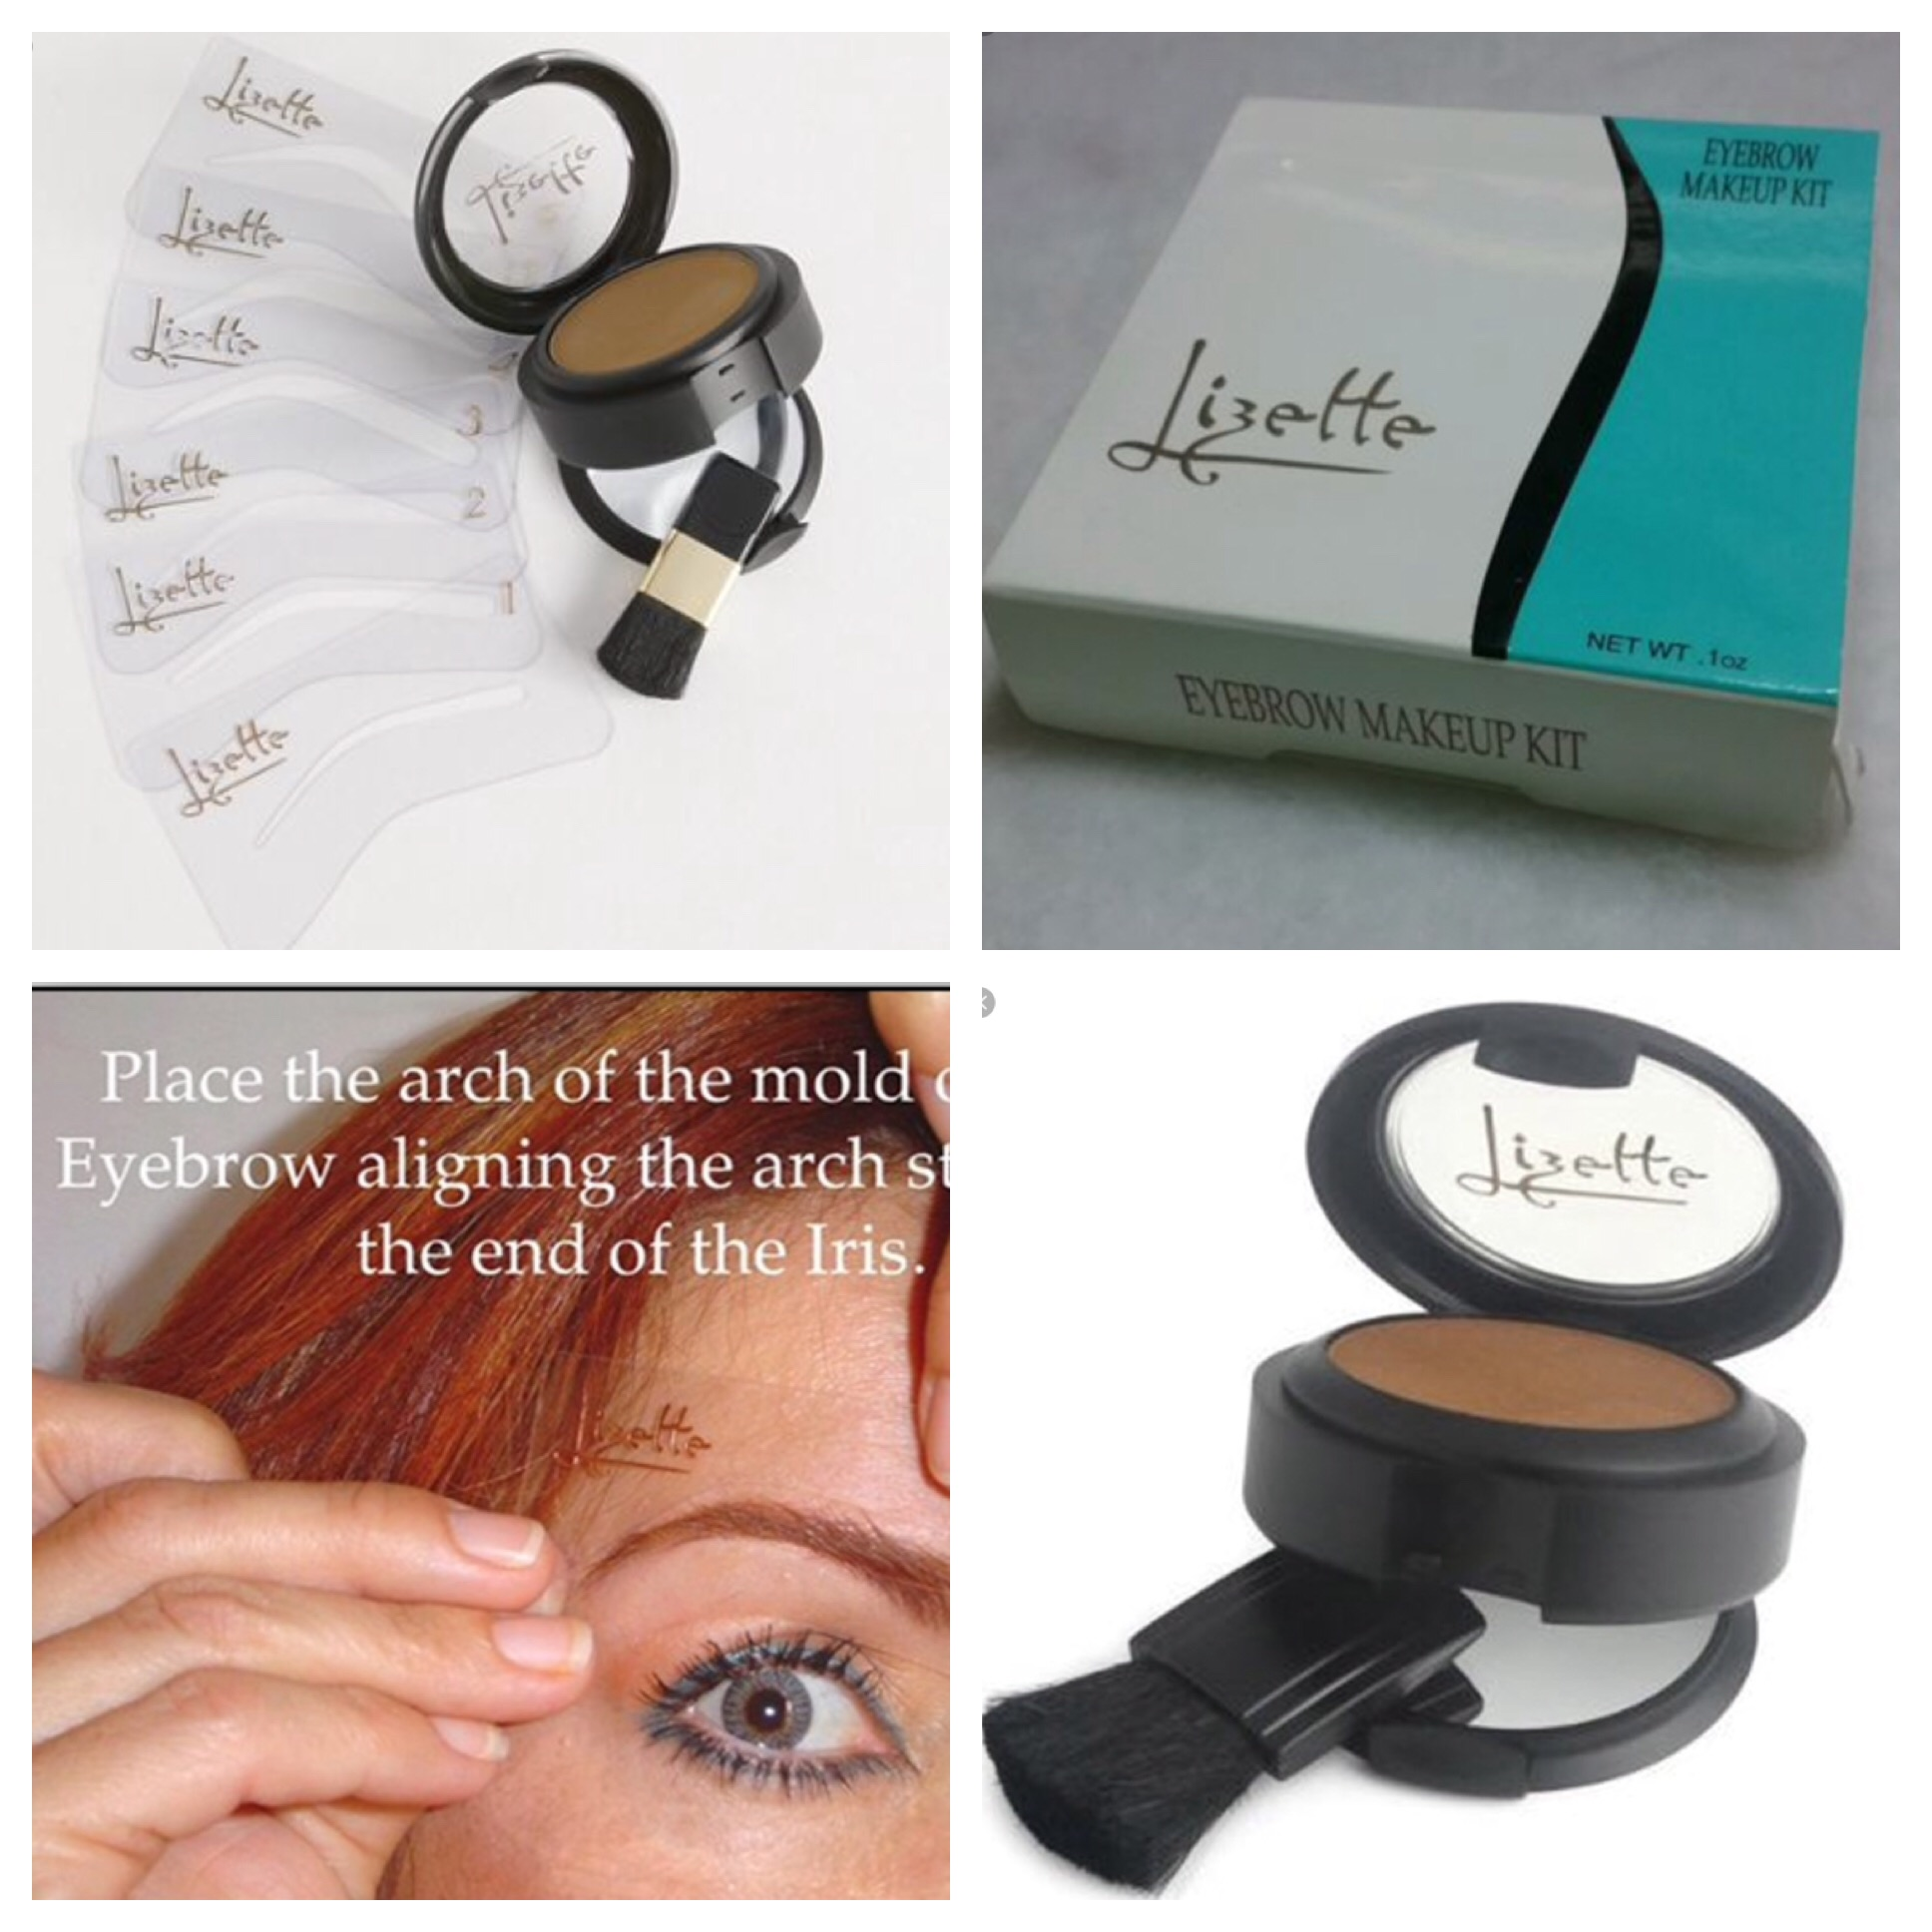 Lizette Eyebrow Makeup Kit Saubhaya